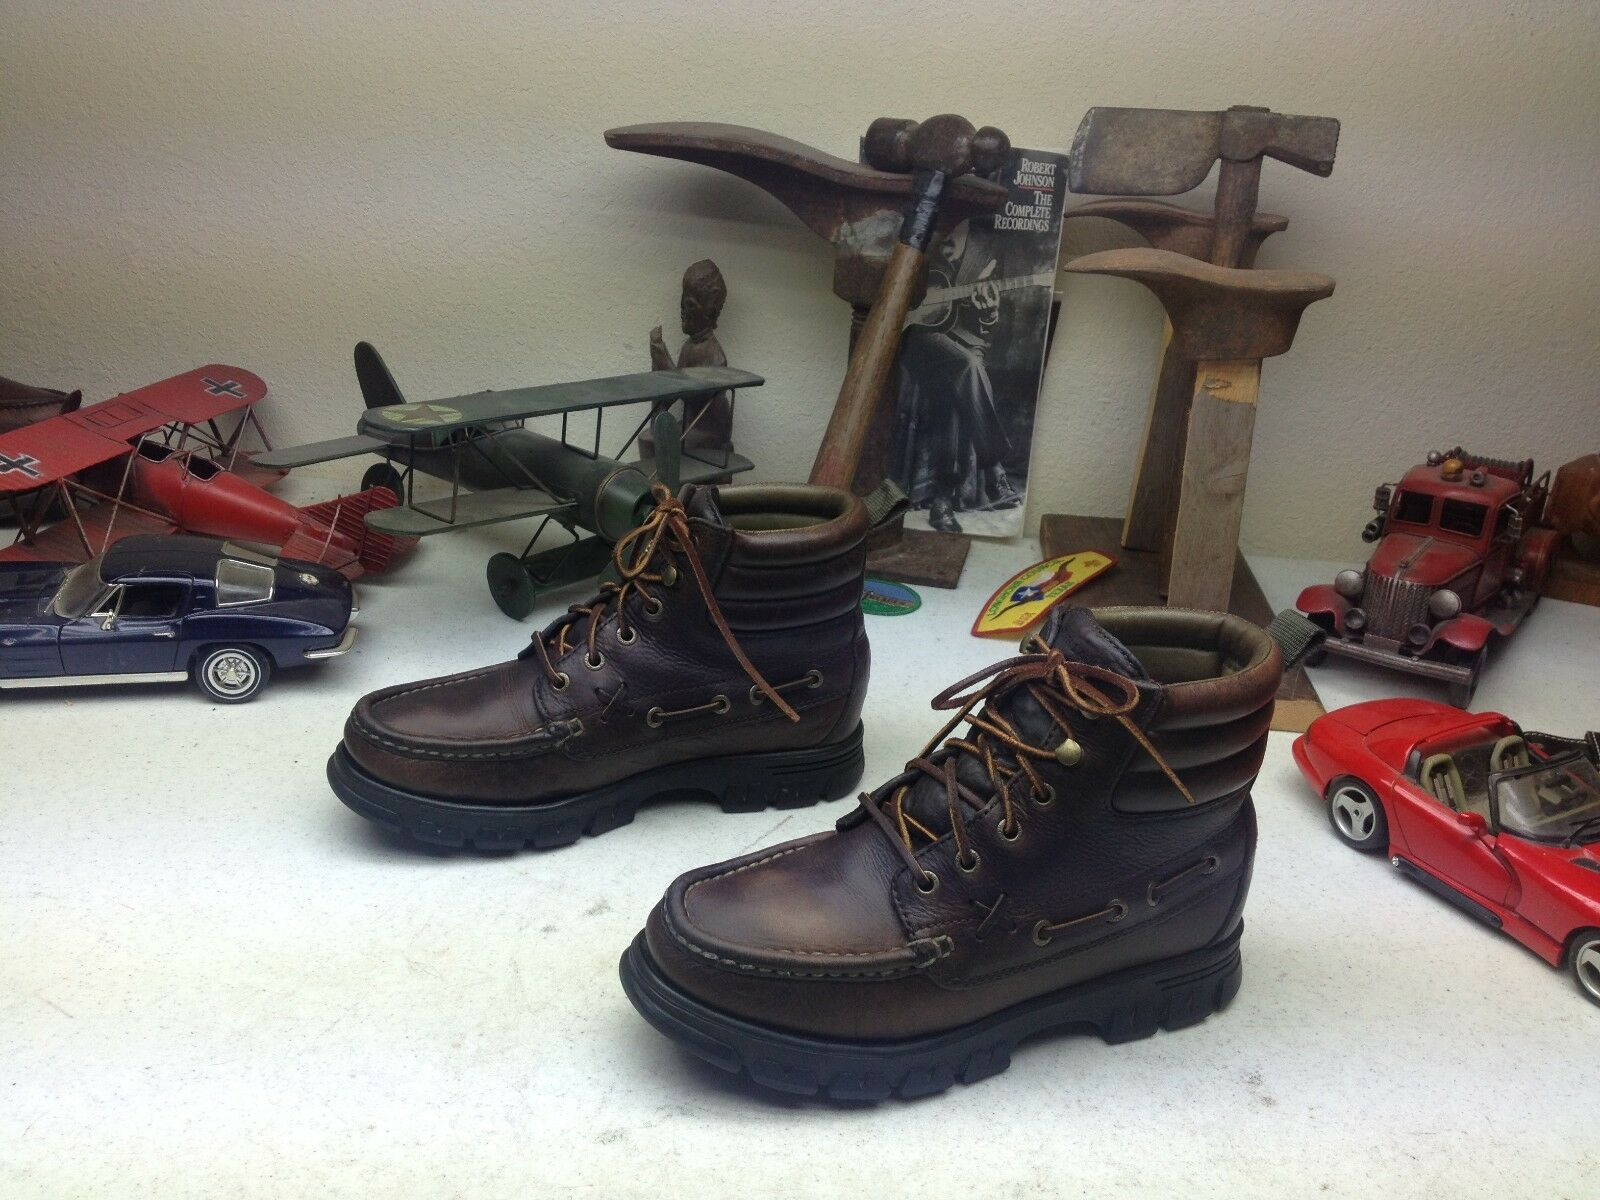 RALPH LAUREN POLO DARK BROWN LEATHER LACE UP ENGINEER TRAIL BOSS BOOTS 7.5 B